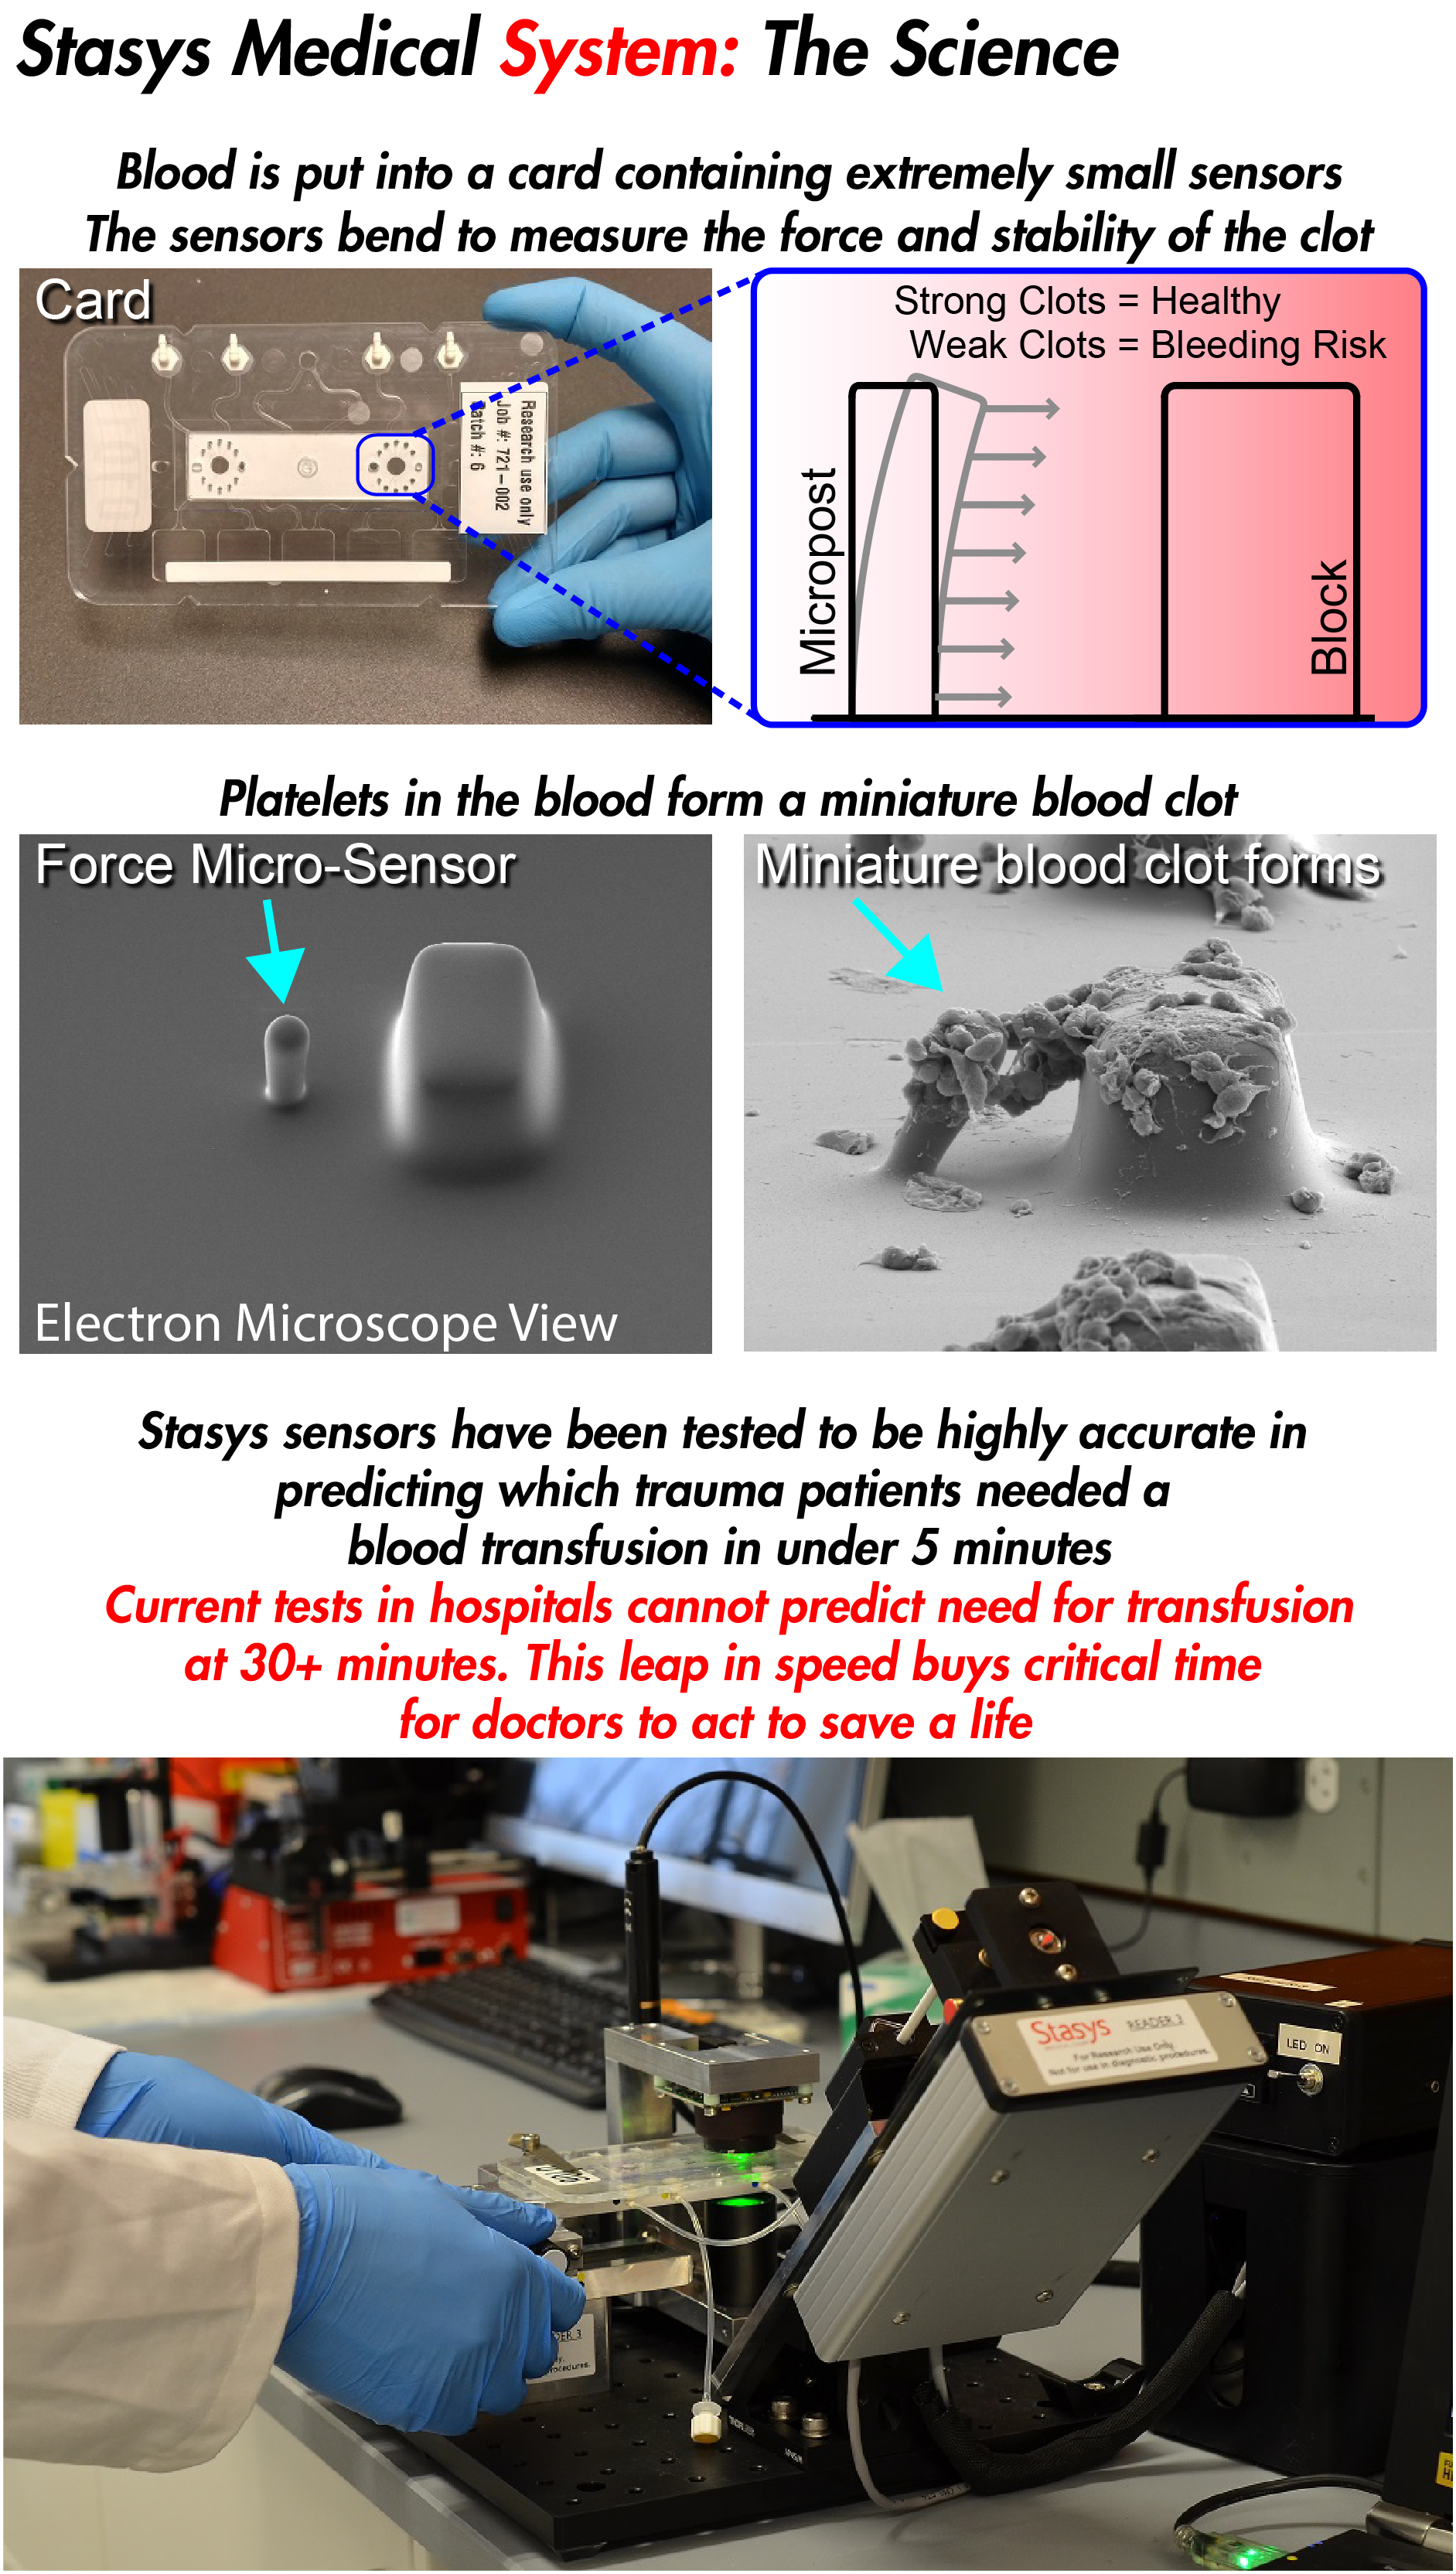 TheScienceTechPage